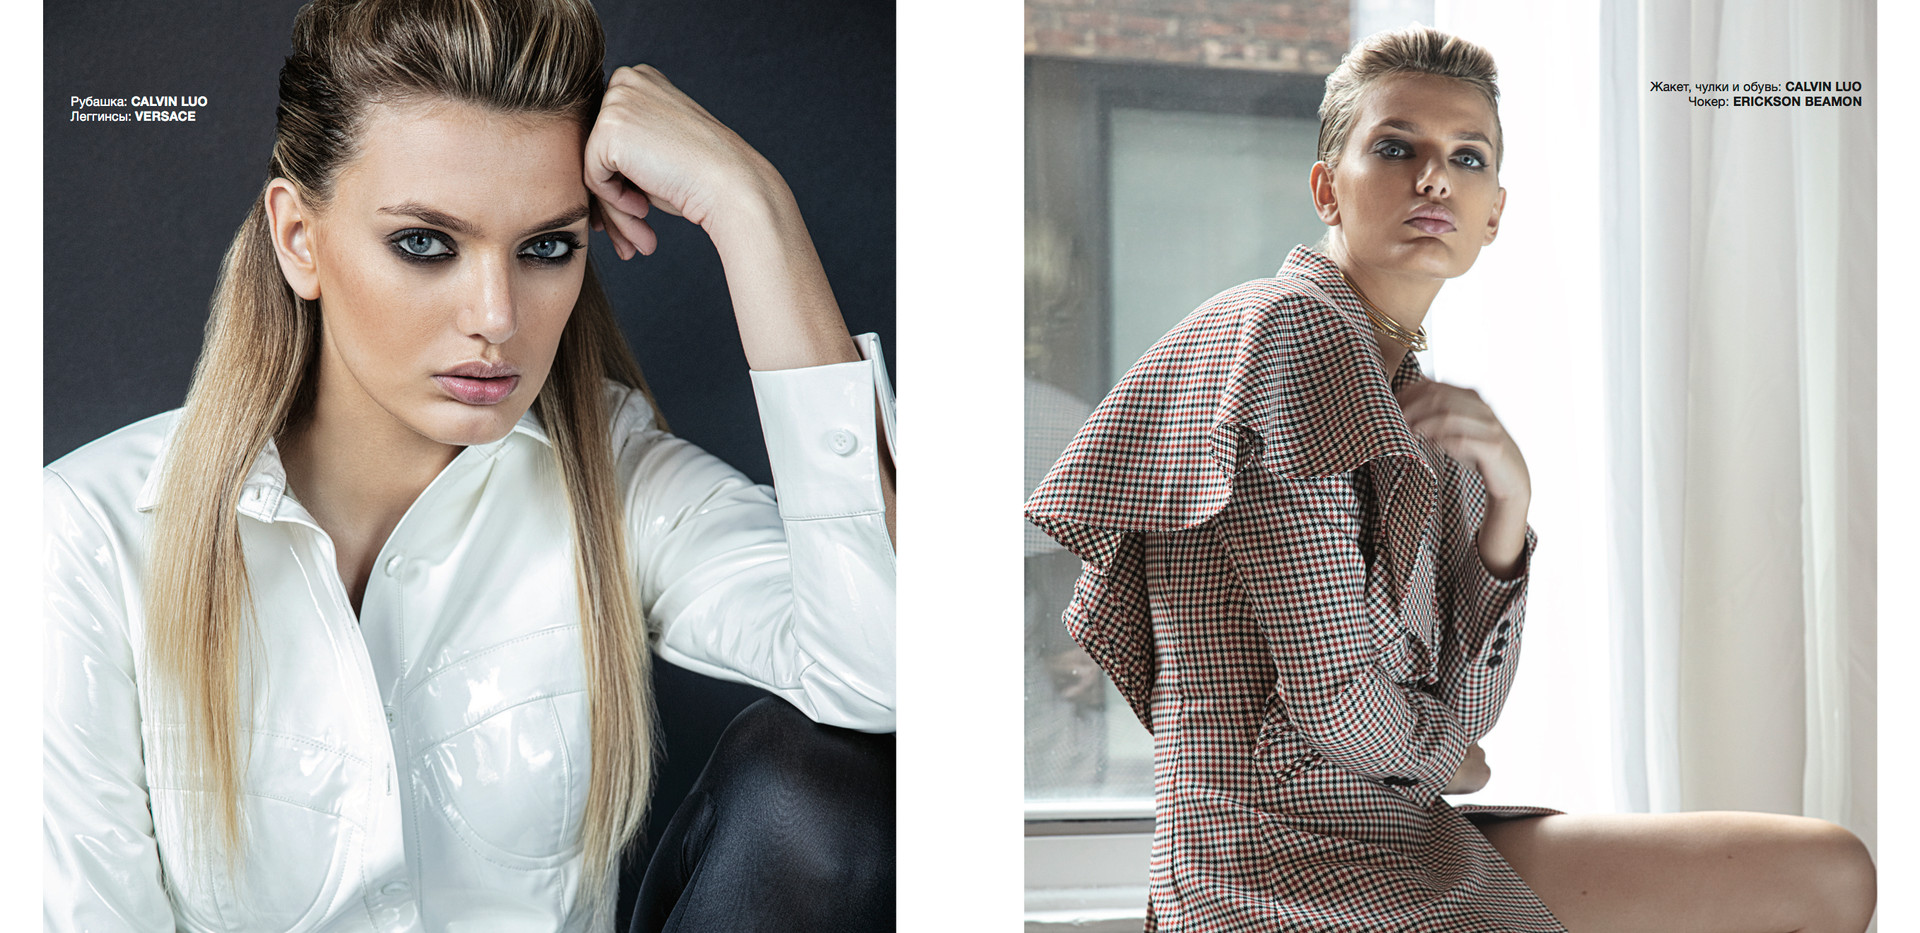 Photo&Casting: ENIKO  Stylist: NEWHEART OHANIAN  Stylist's Assistant: DINNIAH BARTHOLOMEW   Make up: VICTOR NOBLE USING MAC COSMETICS  Hair: KIYO IGARASHI @ MAM-NYC USING ORIBE   Model: BREGJE HEINEN @ ELITE NYC  Producer: NALIME TOURÉ  Video: GRANT FRIEDMAN  Location: BLONDE STUDIOS, New-York